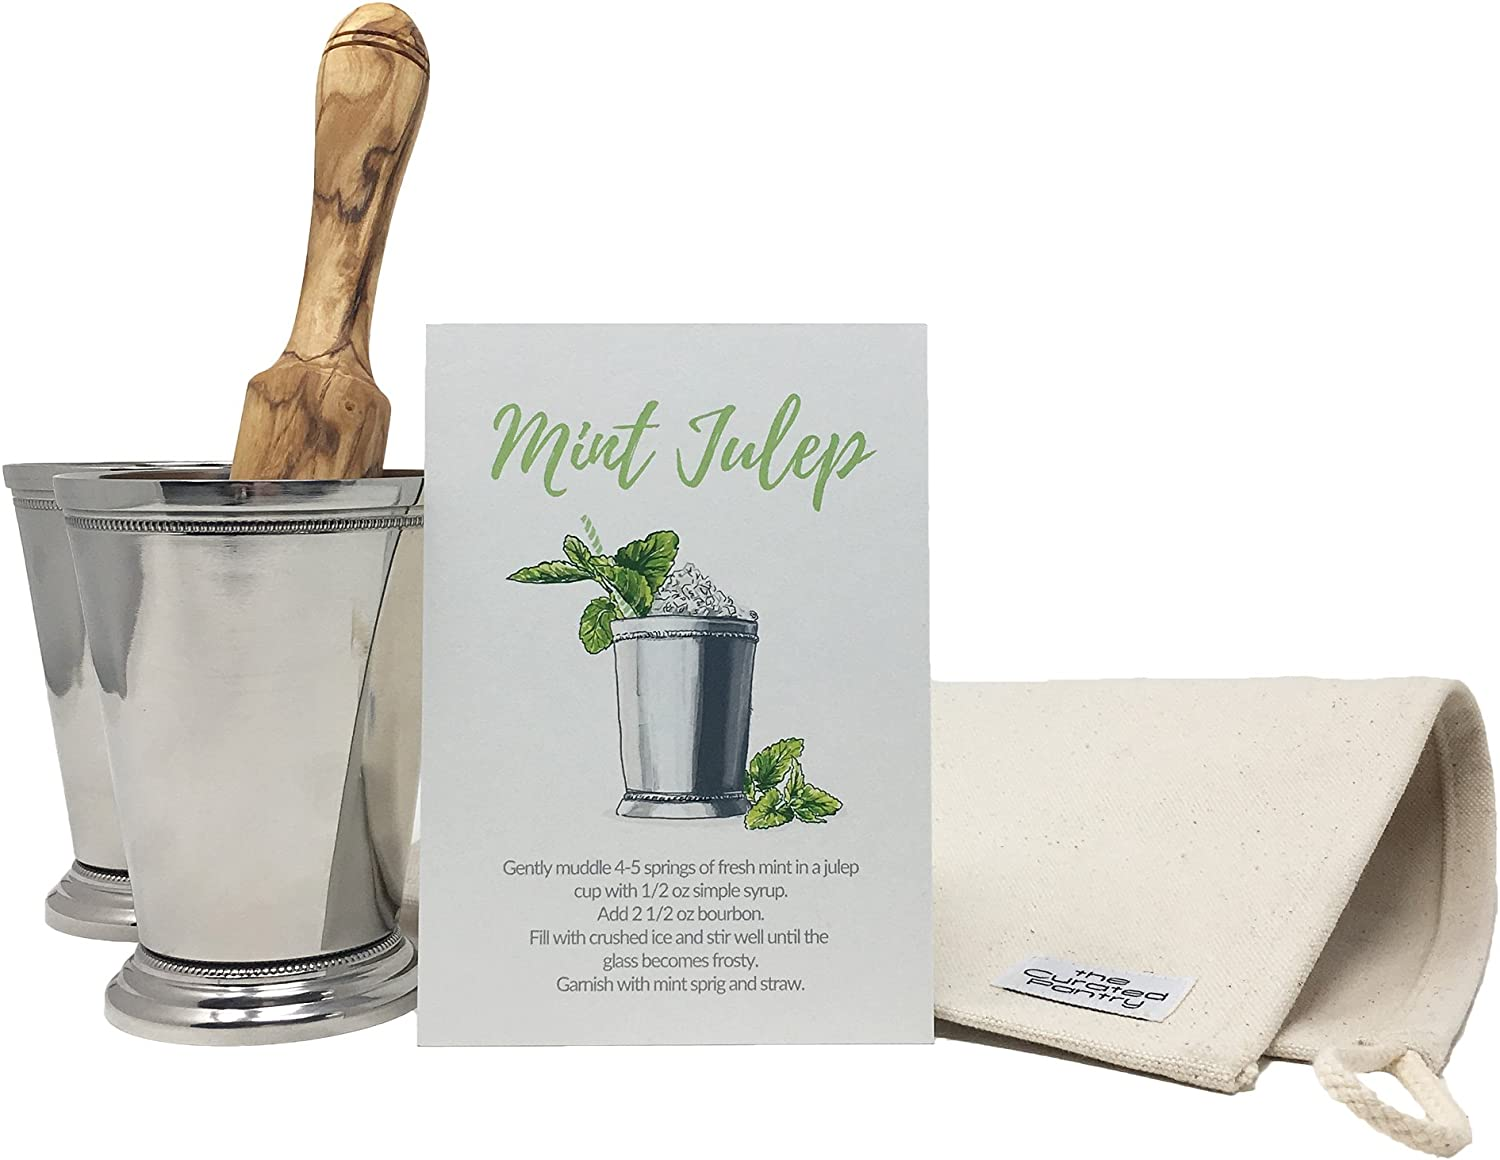 Mint Julep Cocktail Essential Tool Kit - (2) 12oz Cups, Lewis Bag, Muddler Mallet and Recipe Card (5 items)